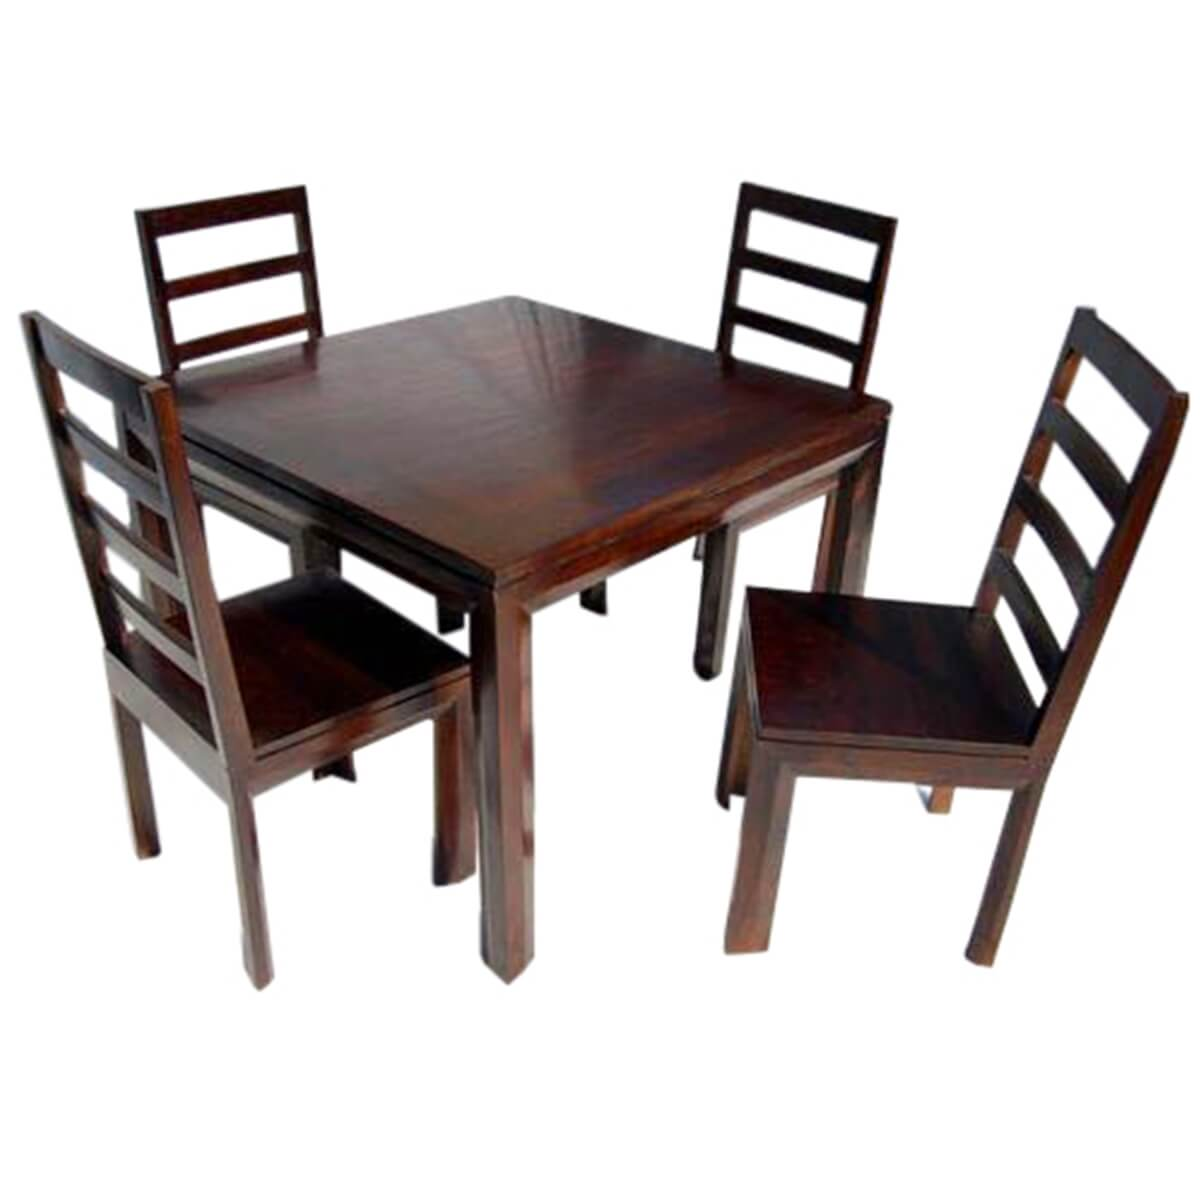 Solid wood transitional dining table and chairs set for Solid wood dining room table and chairs